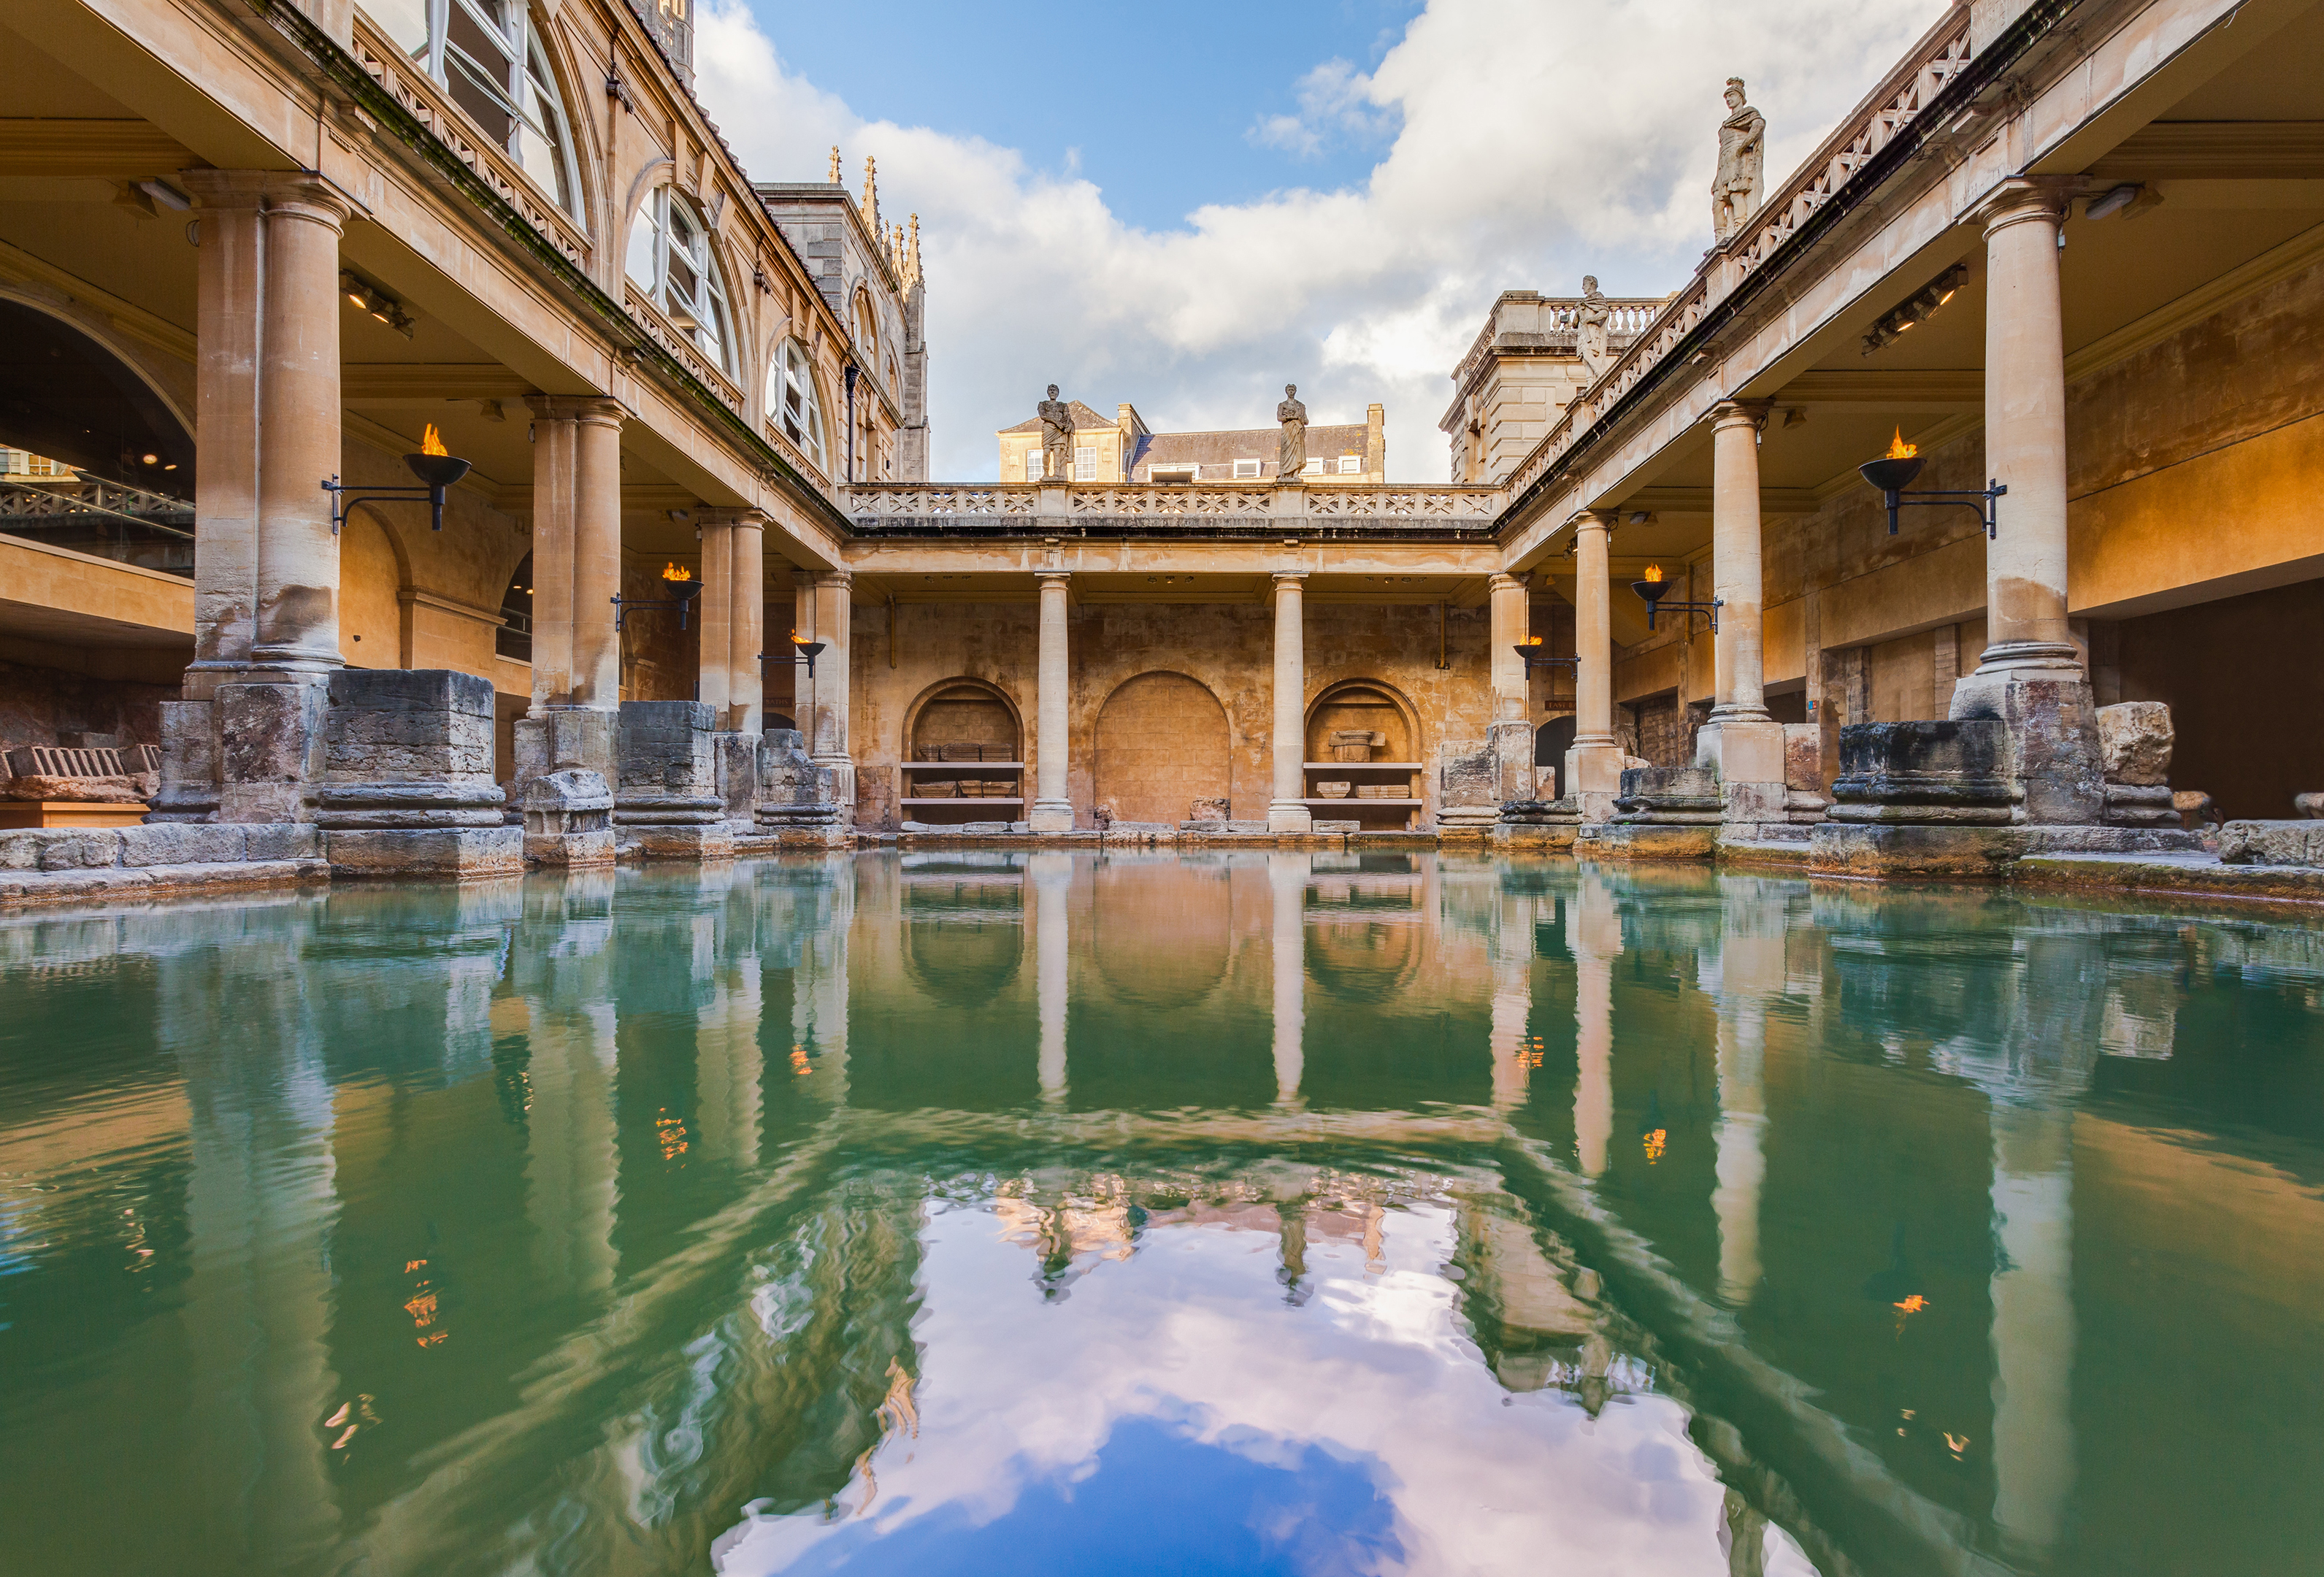 Roman baths, Bath, England by Diego Delso licensed under CC BY-SA 2.0